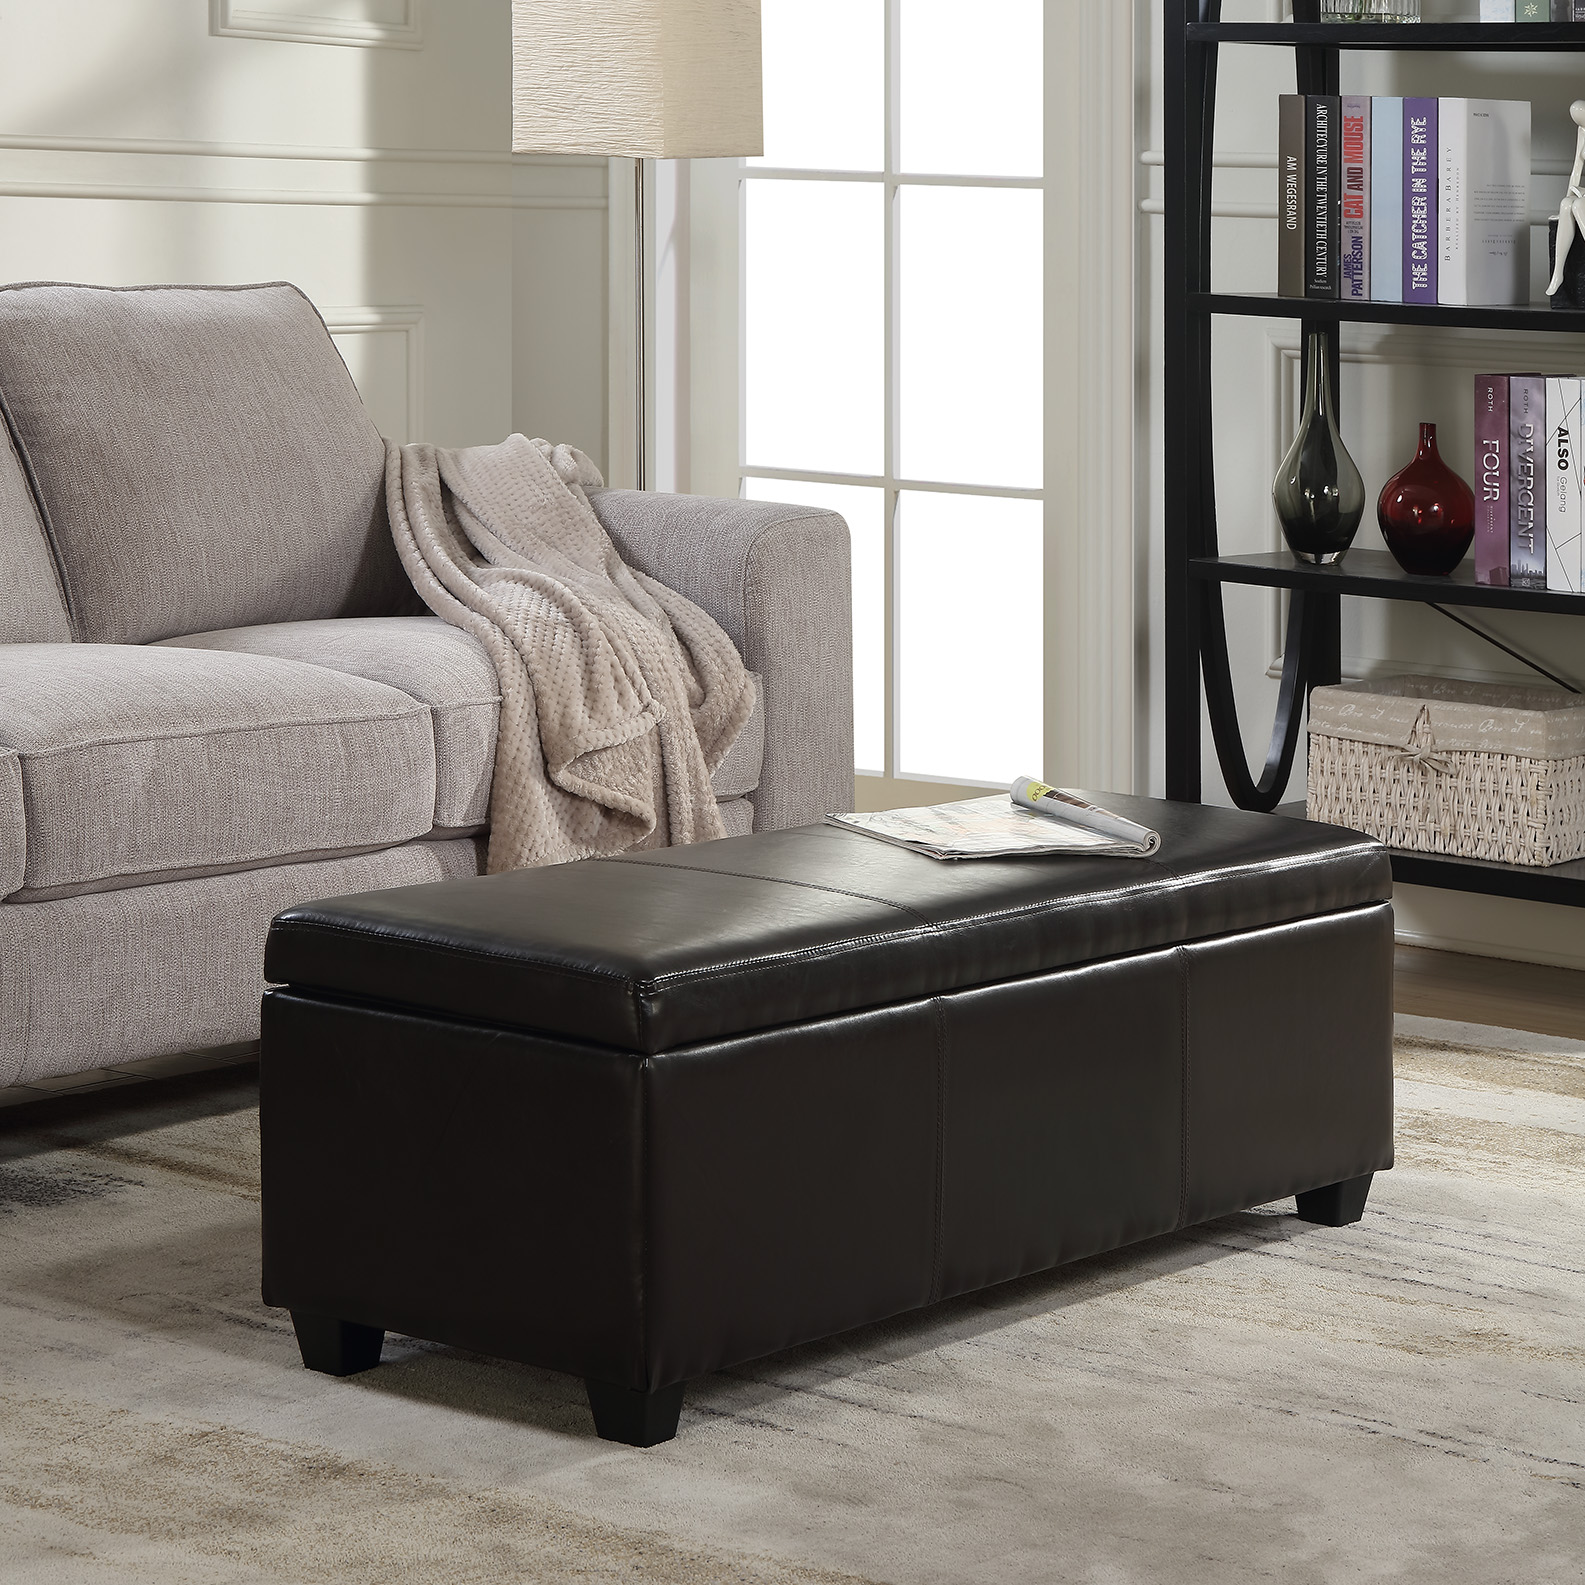 "Belleze 48"" Bench Storage Ottoman Bedroom Luxury Faux Leather Decor (Brown)"